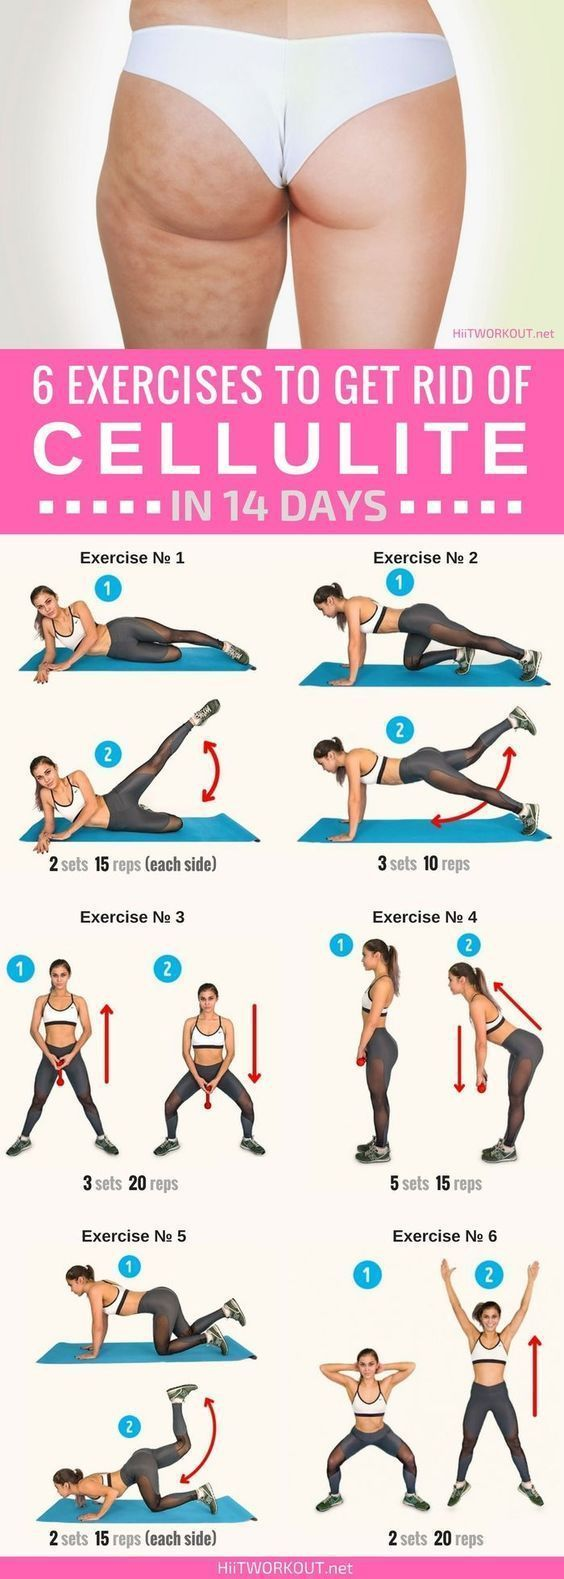 Get rid of cellulite #workout #cellulite